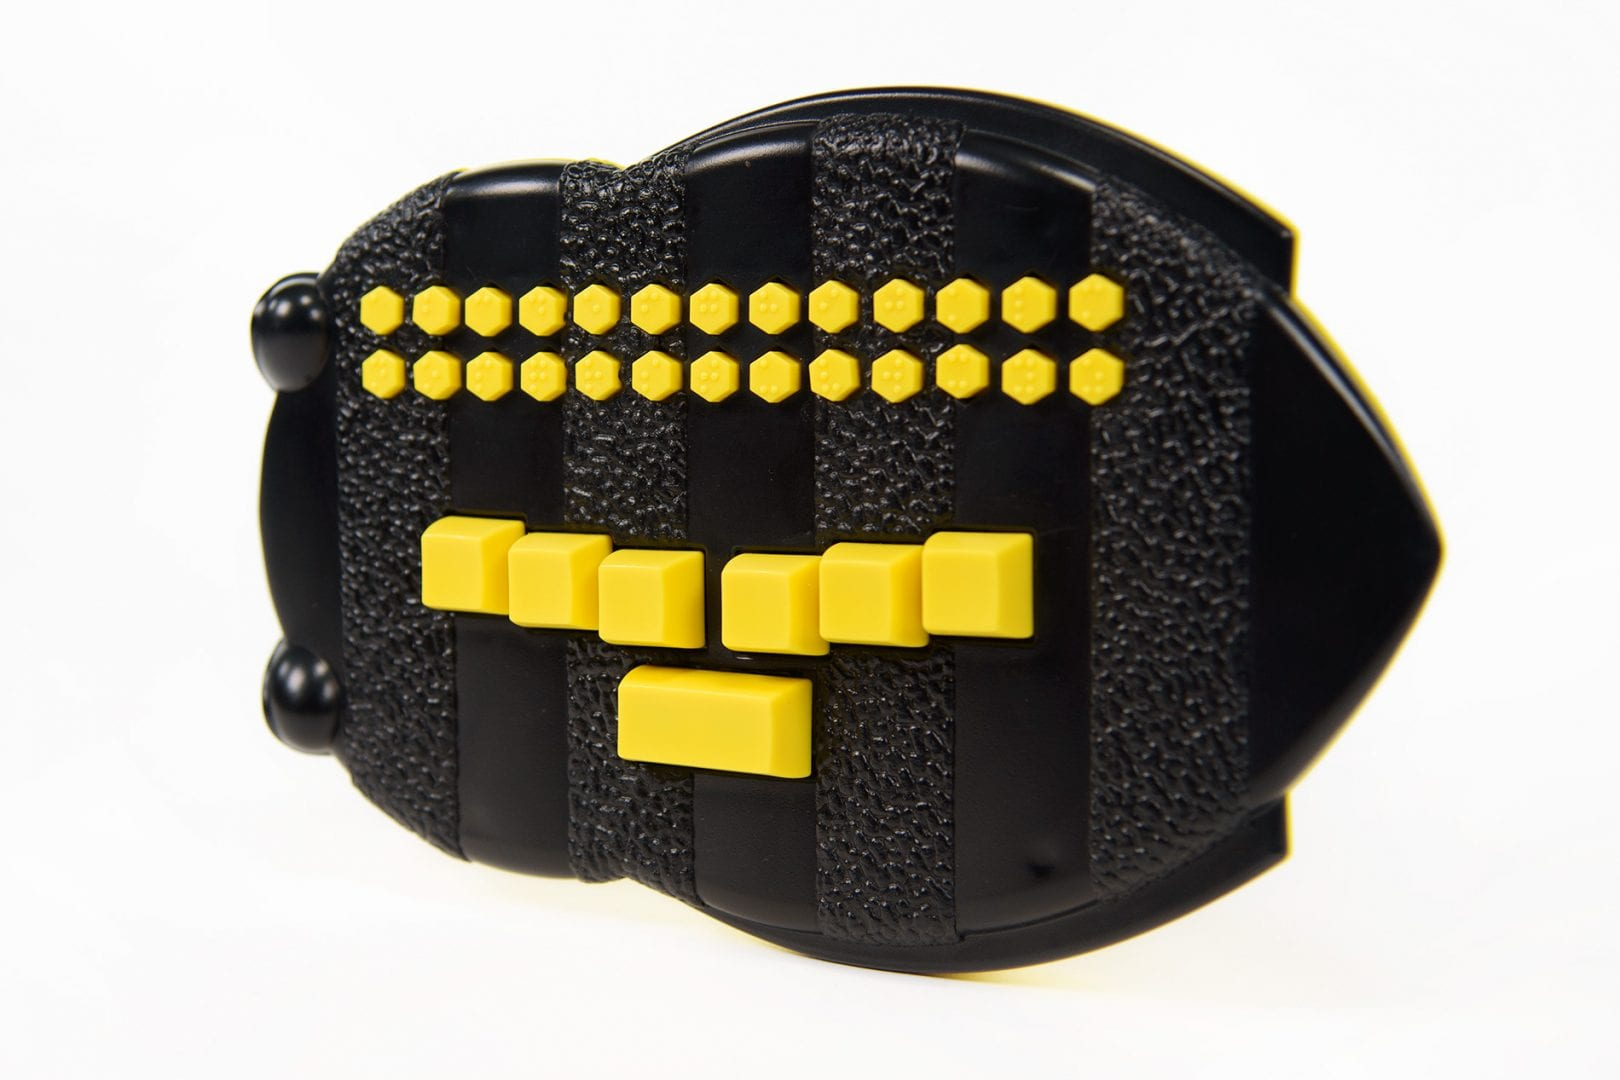 Photo of the Braille Buzz. The unit is bee-shaped black plastic with bright yellow buttons.